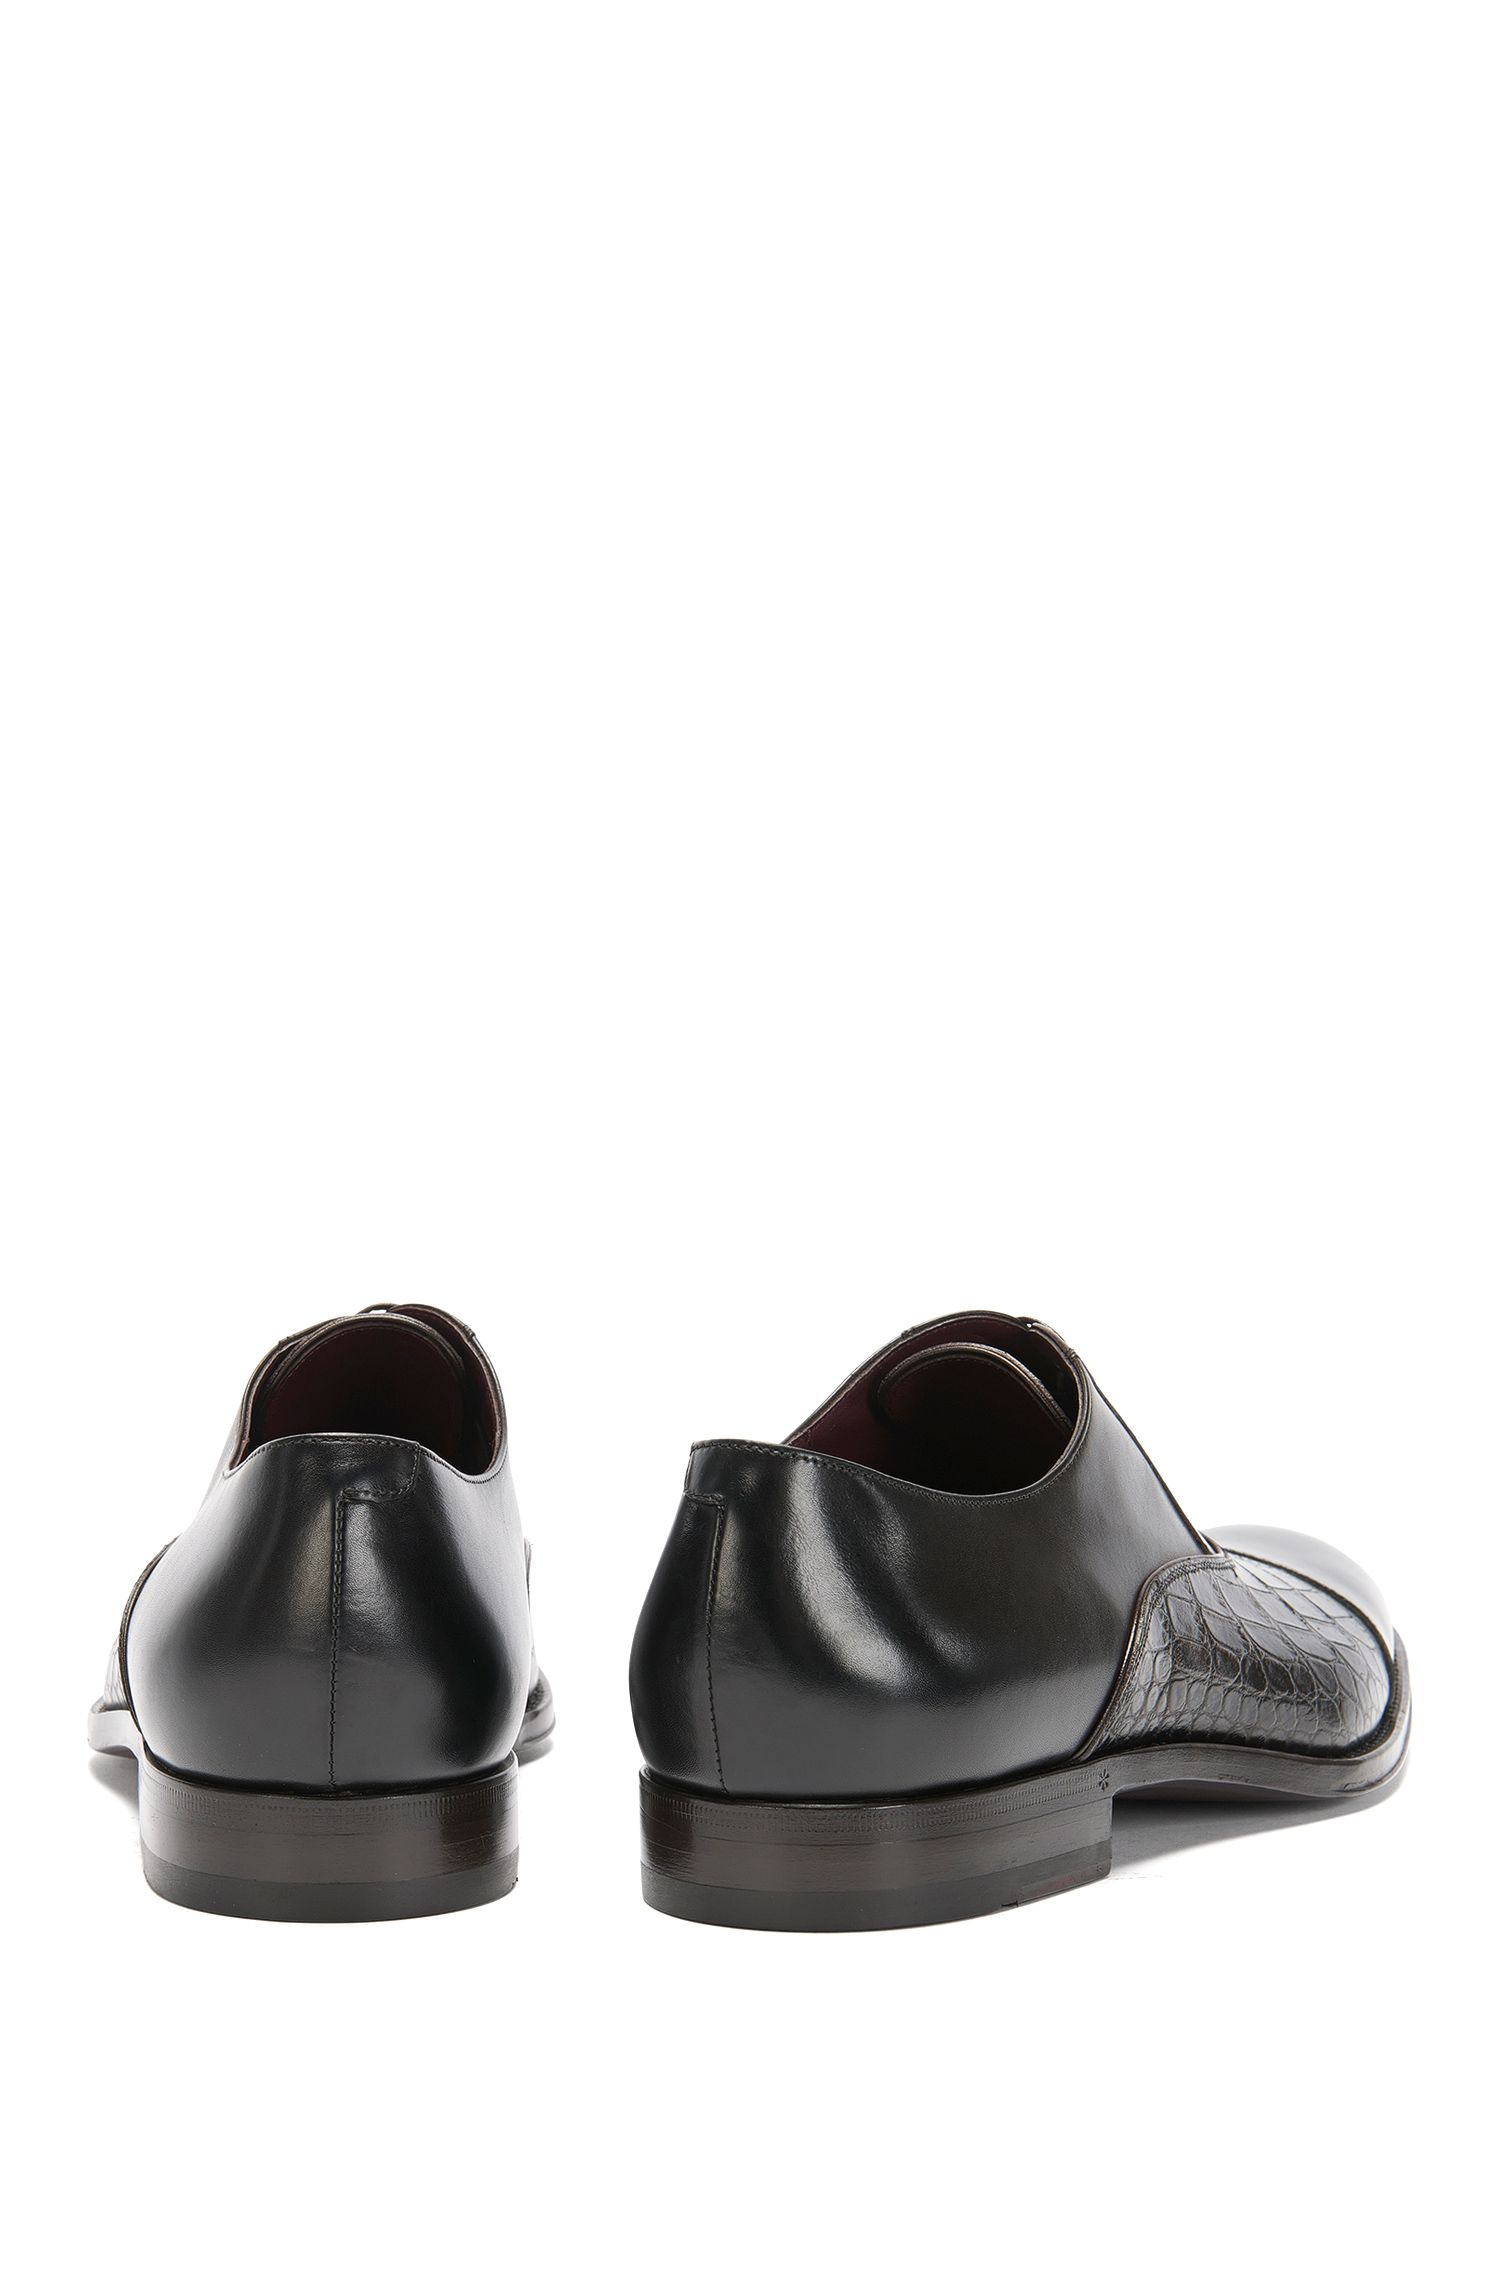 Embossed Leather Oxford Dress Shoe | T-Legend Oxfr Exct